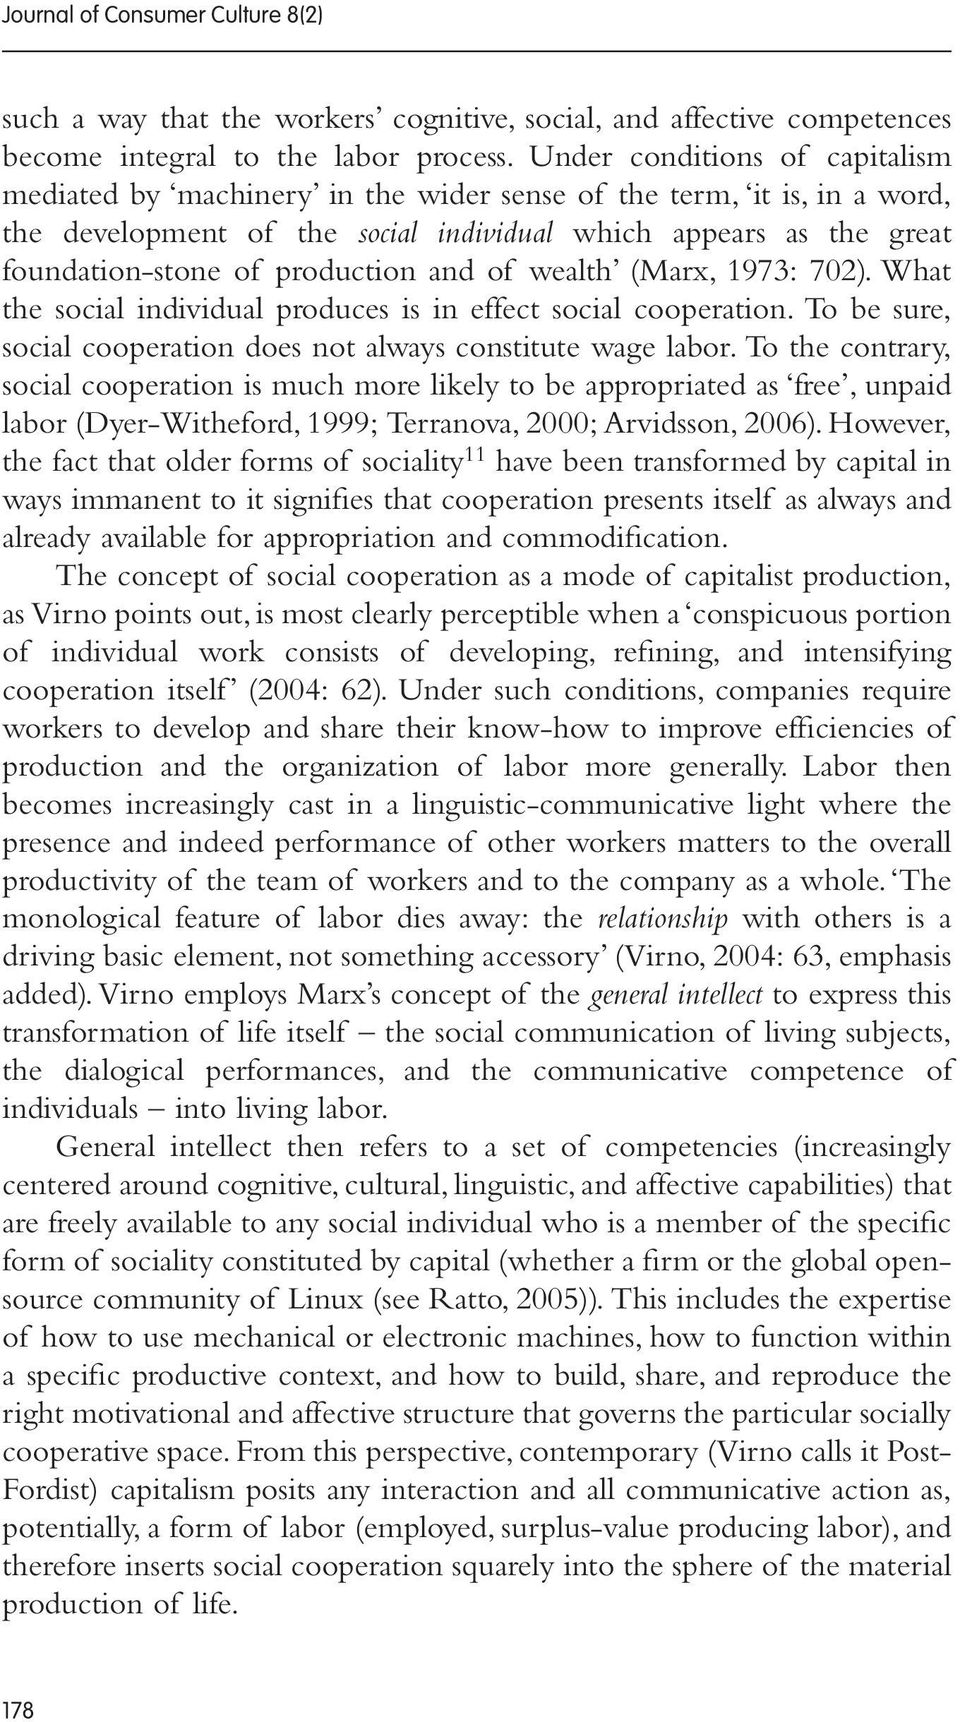 production and of wealth (Marx, 1973: 702). What the social individual produces is in effect social cooperation. To be sure, social cooperation does not always constitute wage labor.